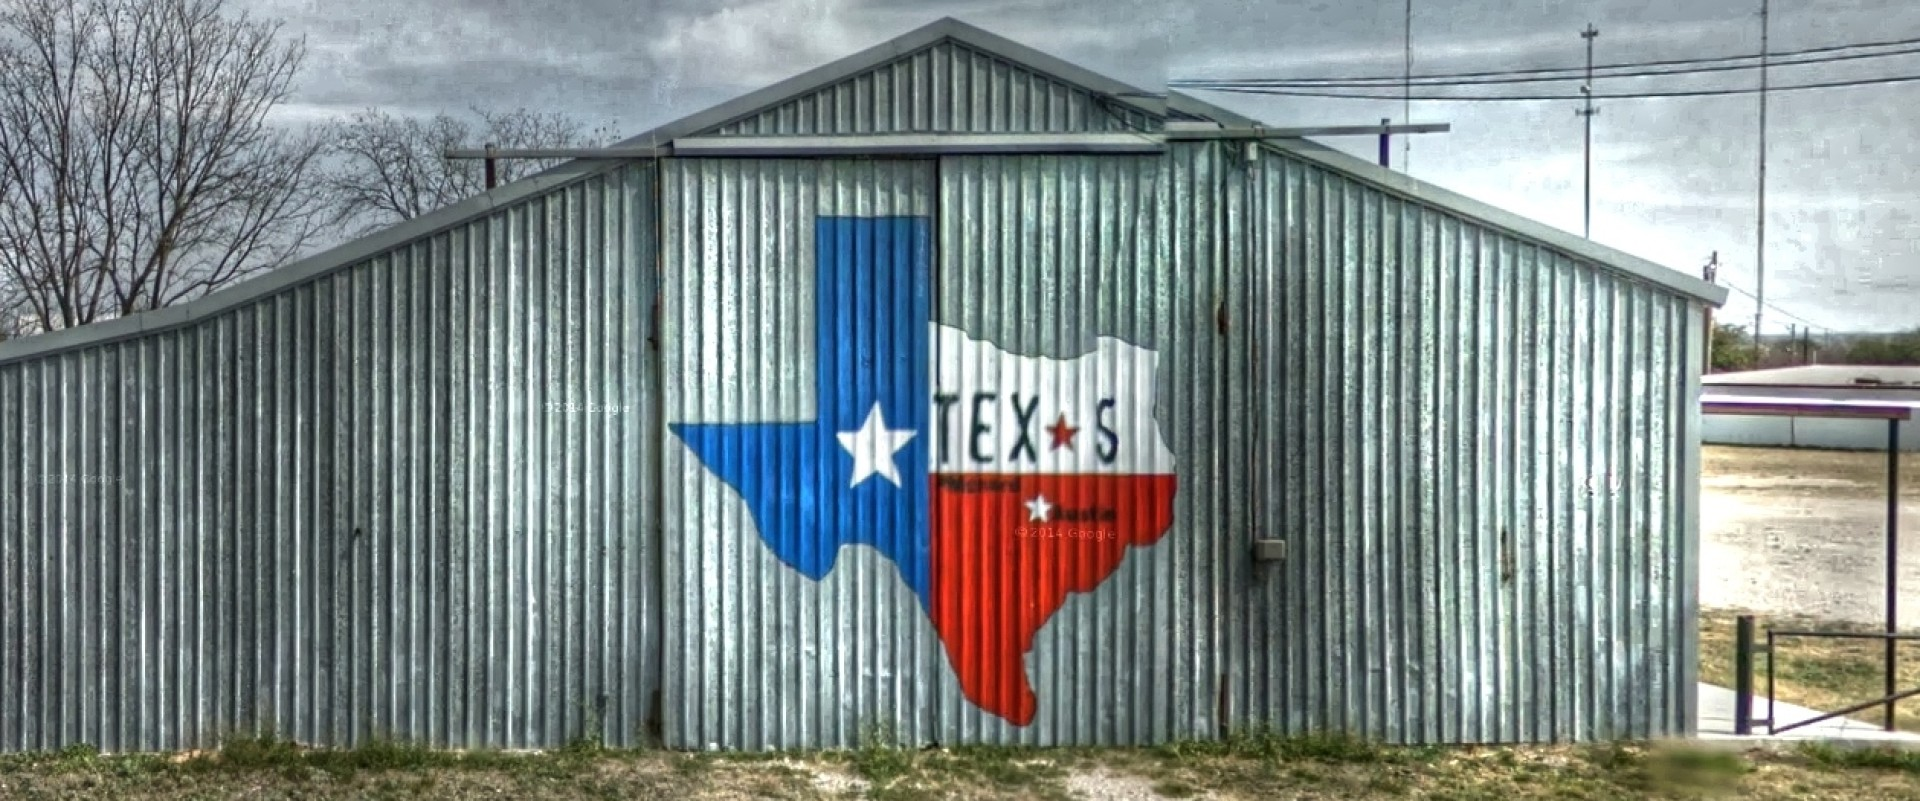 Texas Bell Security